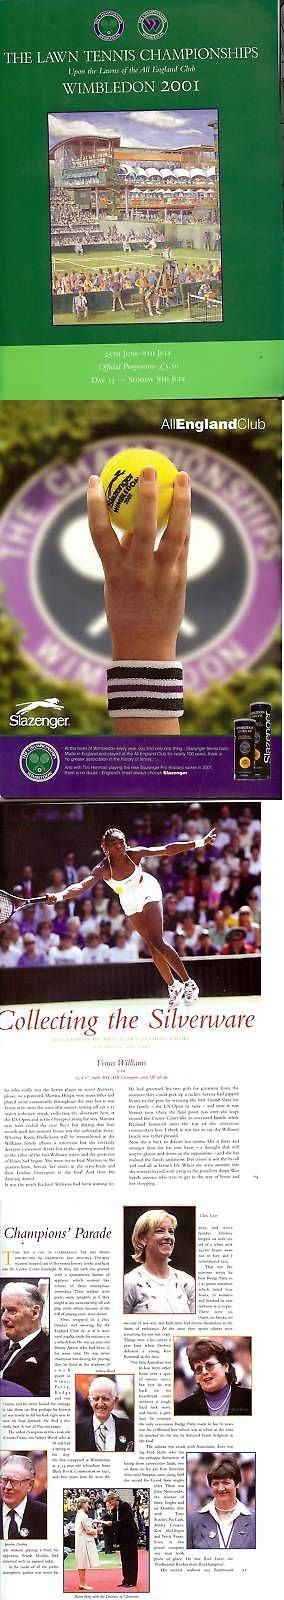 Tennis 430: 2001 Wimbleton Lawn Tennis Championships Program, Wimbledon Finals Order Of Play -> BUY IT NOW ONLY: $149.95 on eBay!